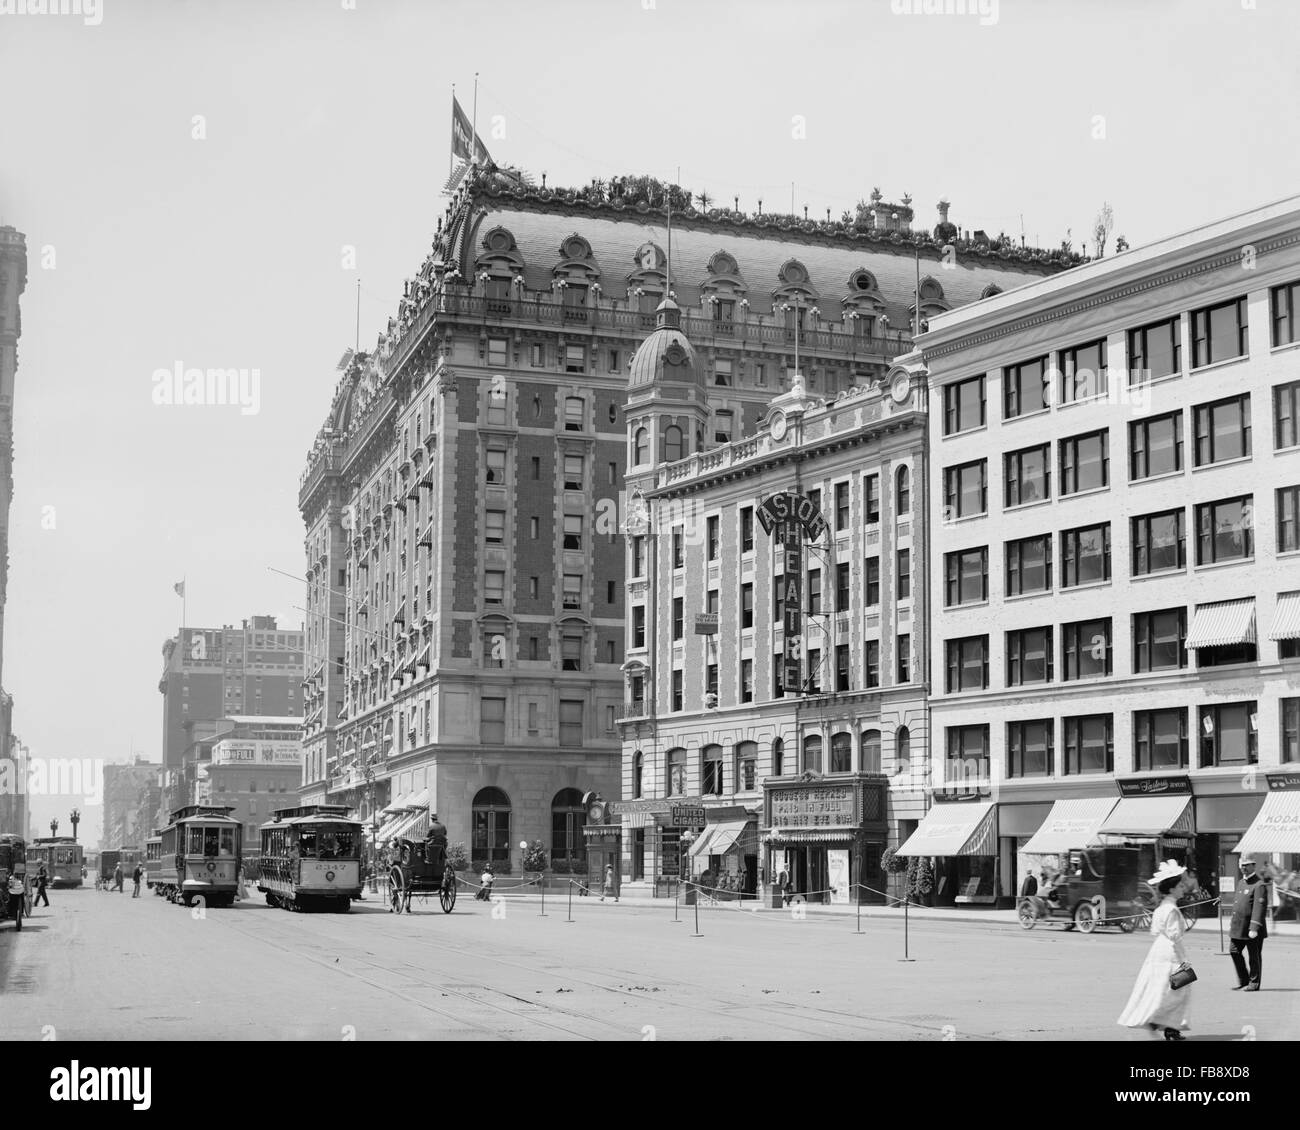 Street Scene, Hotel Astor and Astor Theater, Broadway, Times Square, New York City, USA, circa 1910 - Stock Image